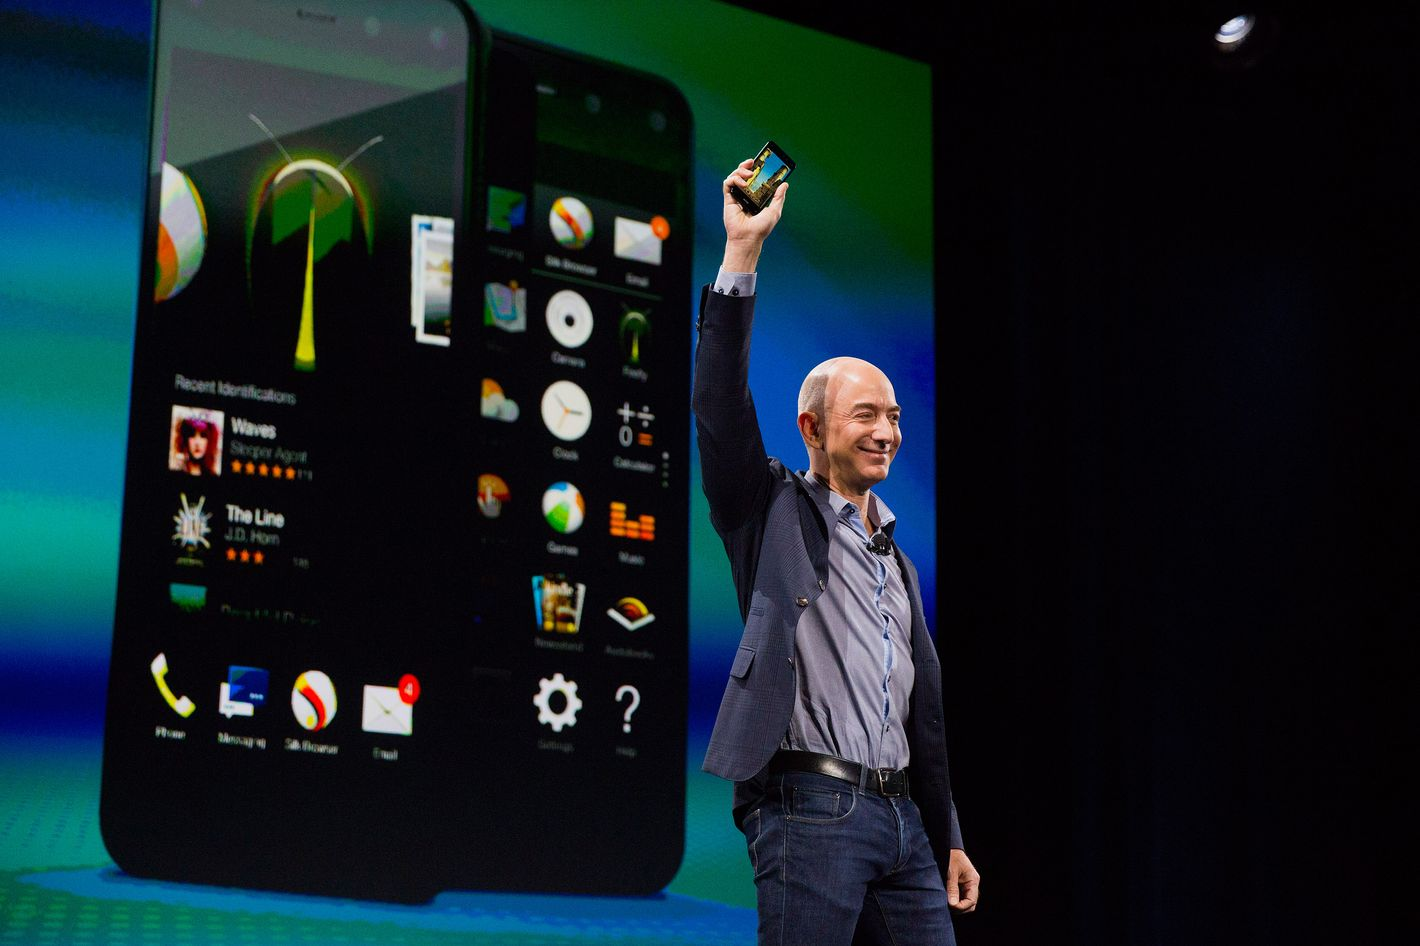 Jeff Bezos, chief executive officer of Amazon.com Inc., unveils the Fire Phone during an event at Fremont Studios in Seattle, Washington, U.S., on Wednesday, June 18, 2018. Amazon.com Inc. jumped into the crowded smartphone market with its own handset called Fire Phone, ramping up competition with Apple Inc. and Samsung Electronics Co. Photographer: Mike Kane/Bloomberg via Getty Images